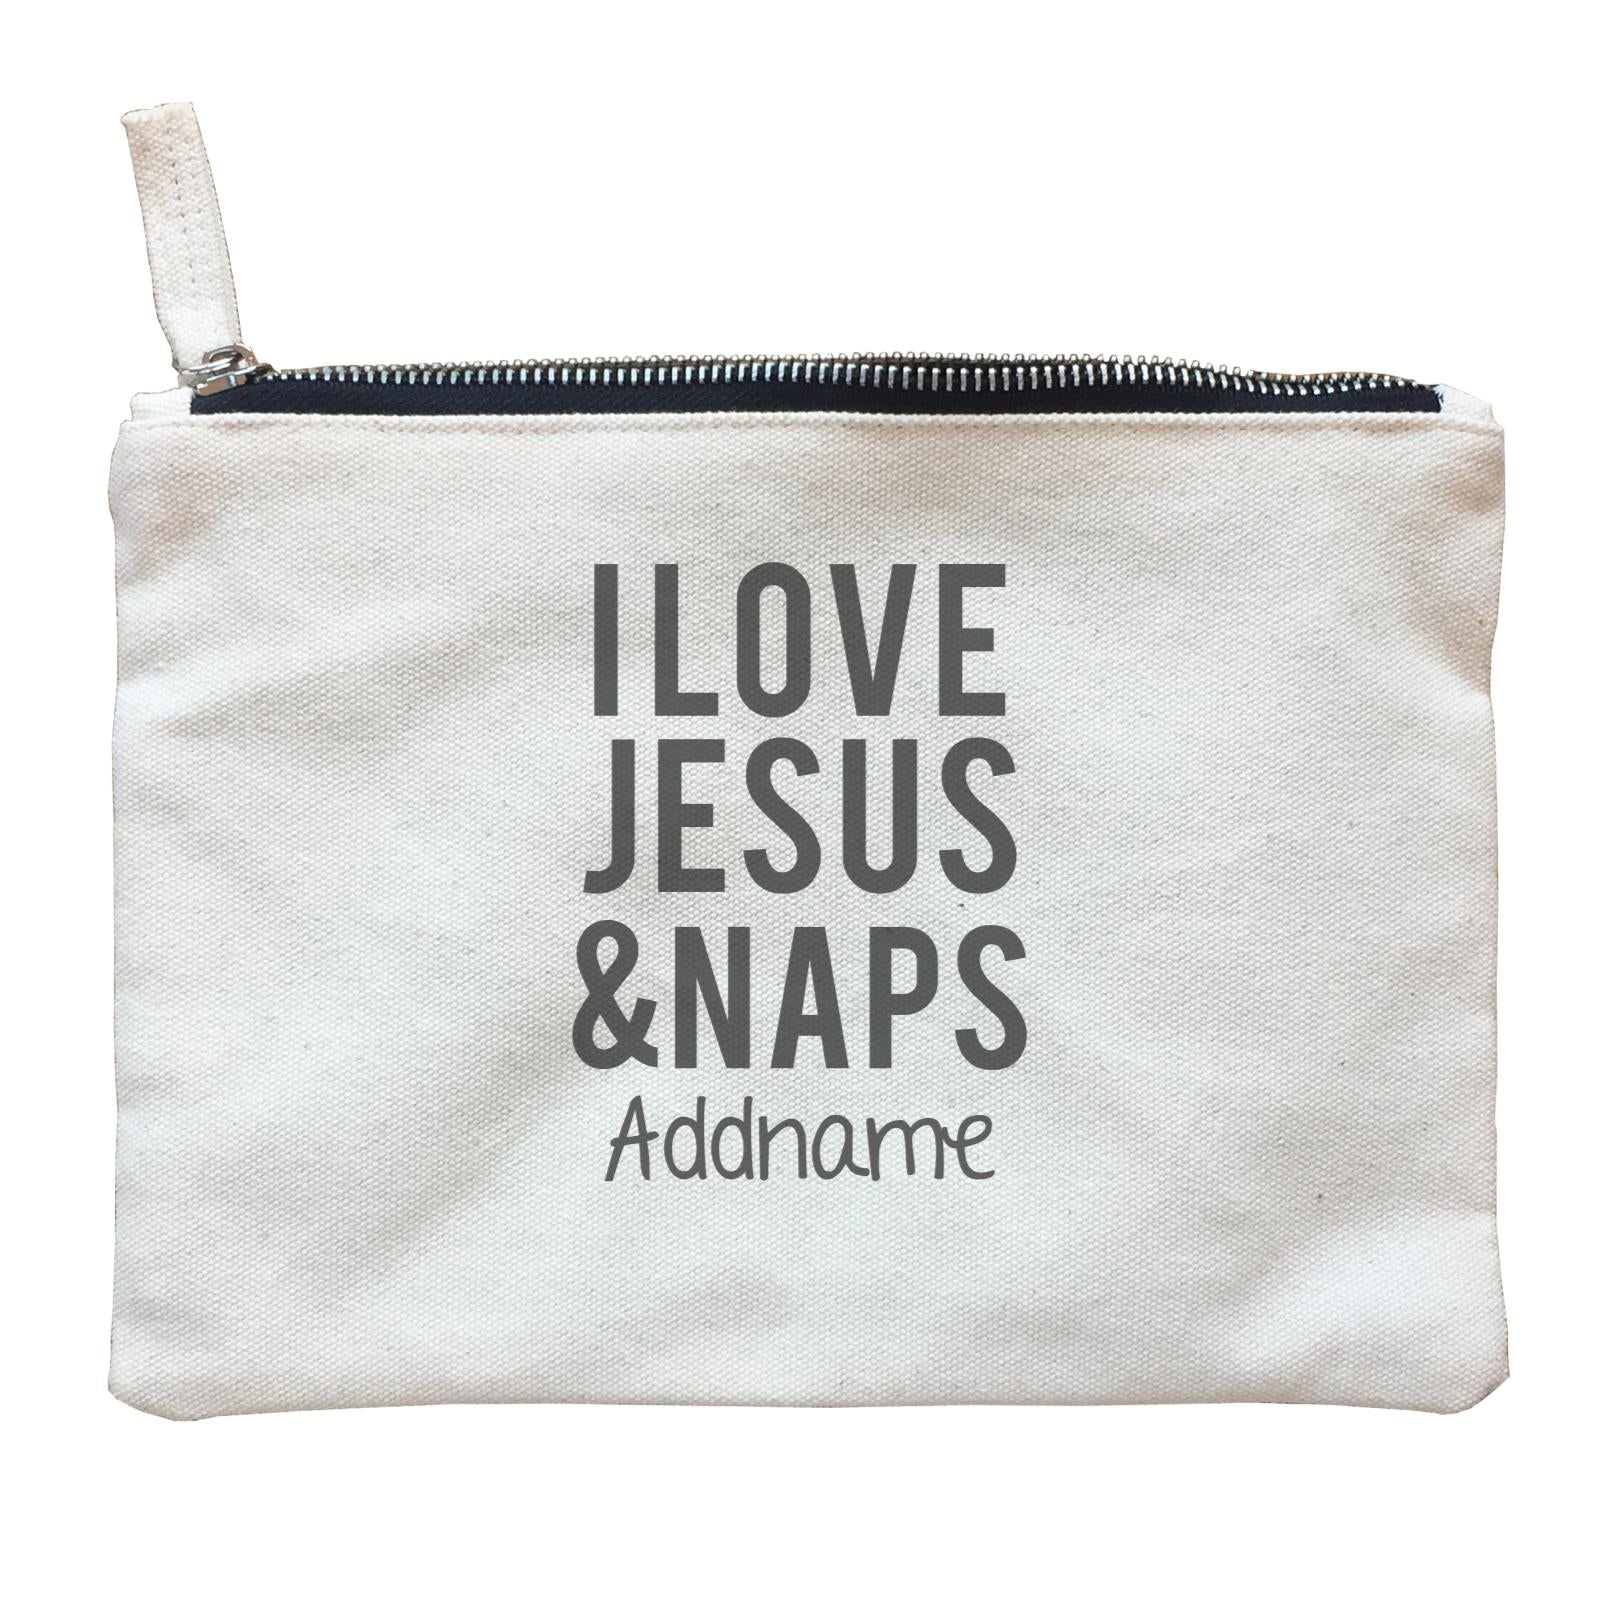 Christian Baby I Love Jesus & Naps Addname Zipper Pouch